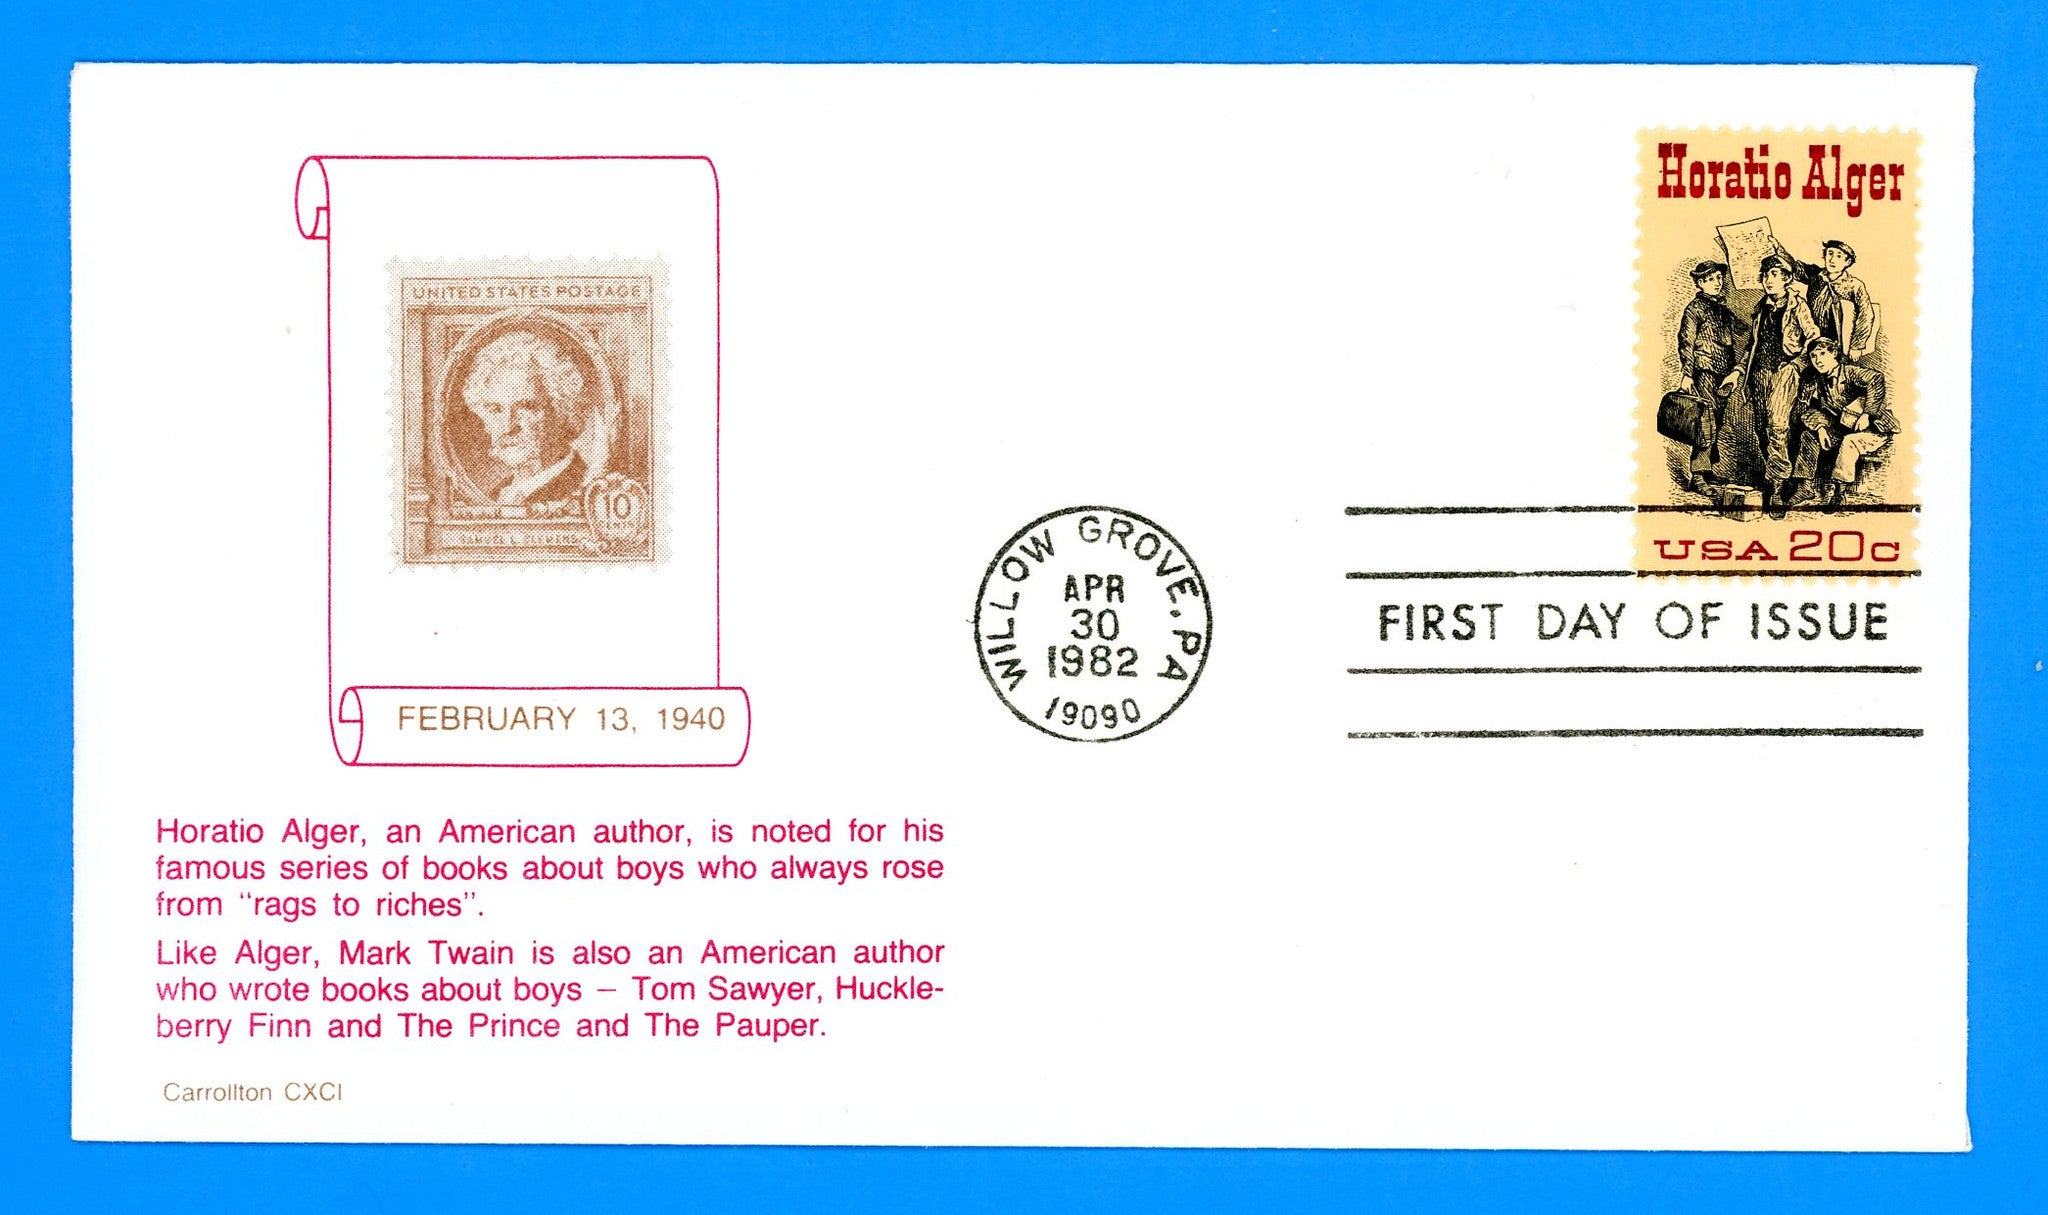 Scott 2010 Horatio Alger First Day Cover by Carrollton